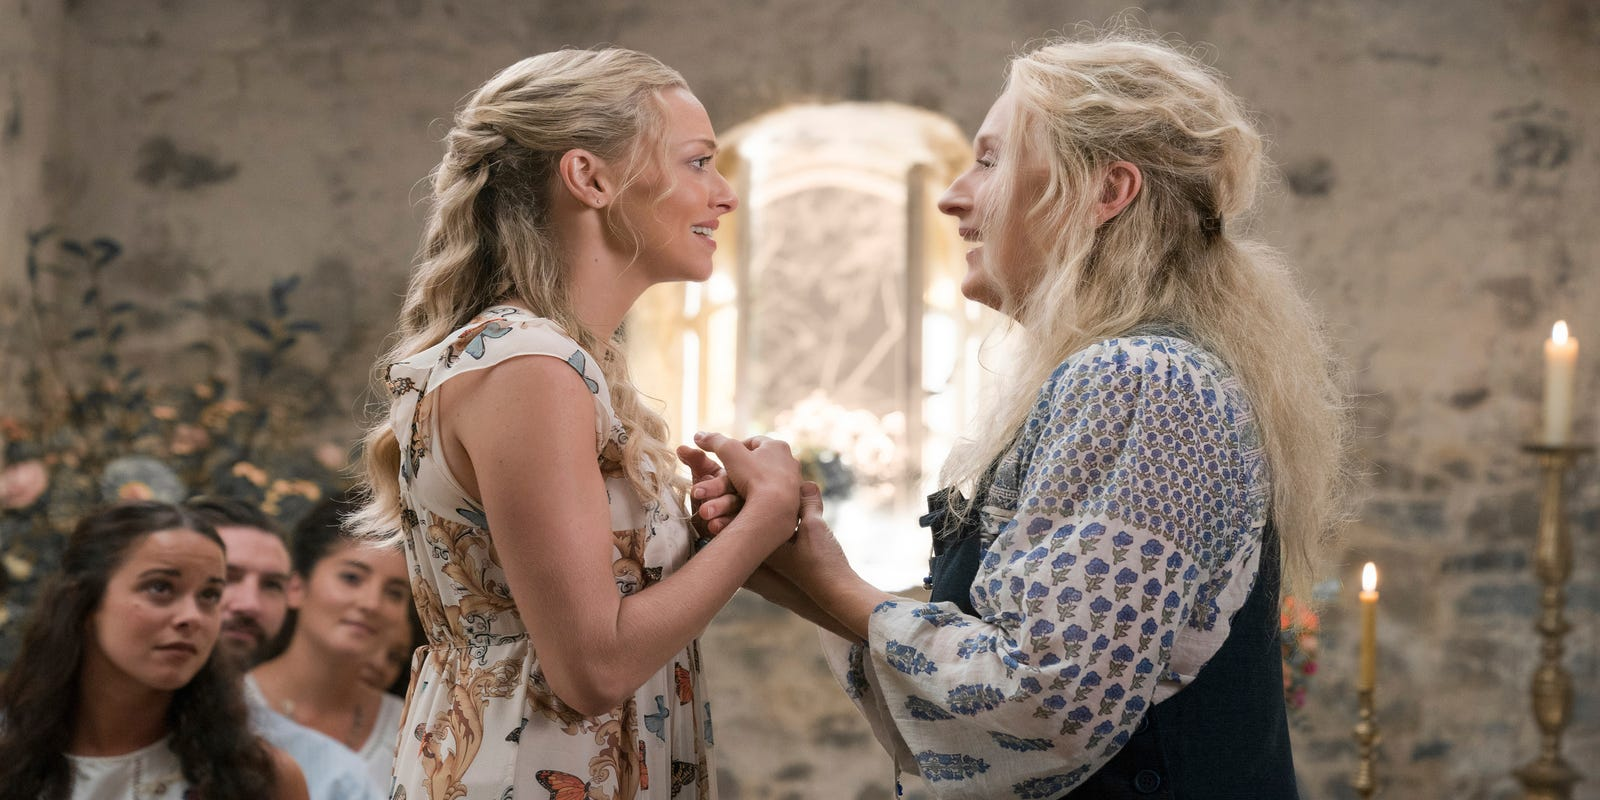 Mamma Mia 2' spoilers: Here's why we cried for Meryl Streep's Donna